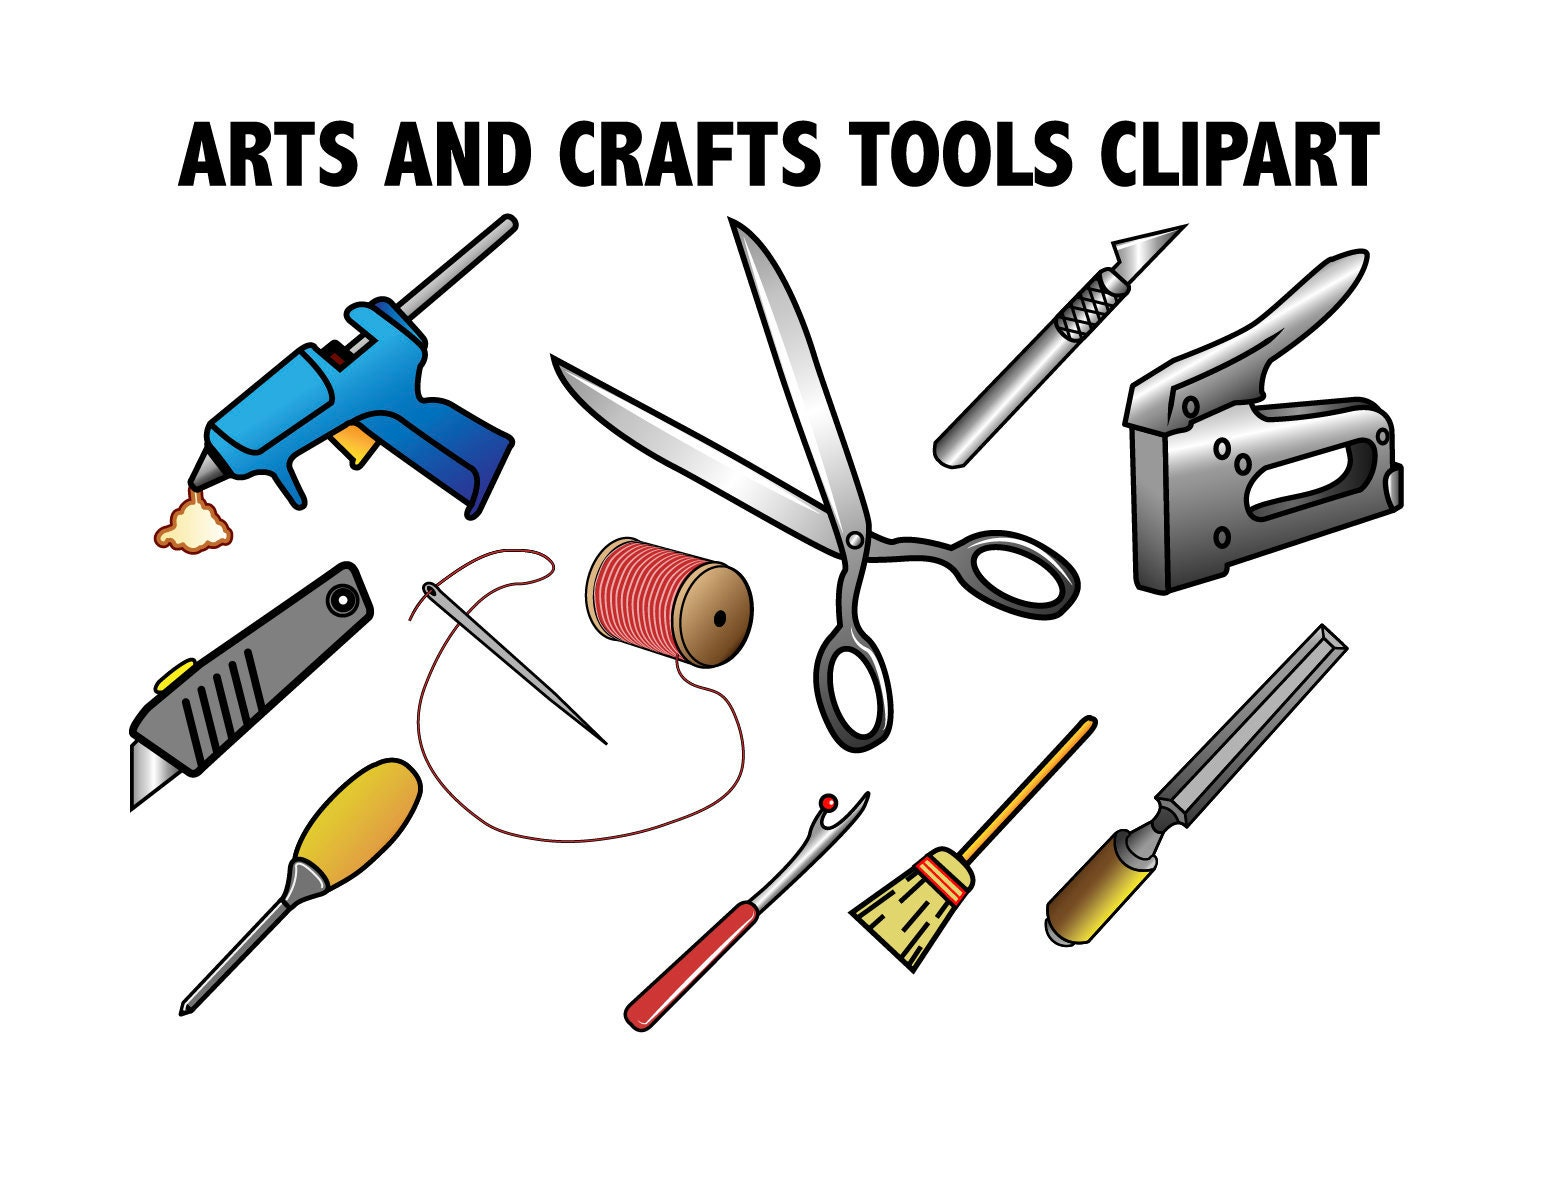 Arts & Crafts Tools CLIPART - crafting and hobby icons, Printable DIY  images, etsy store clipart, art supplies, do it yourself